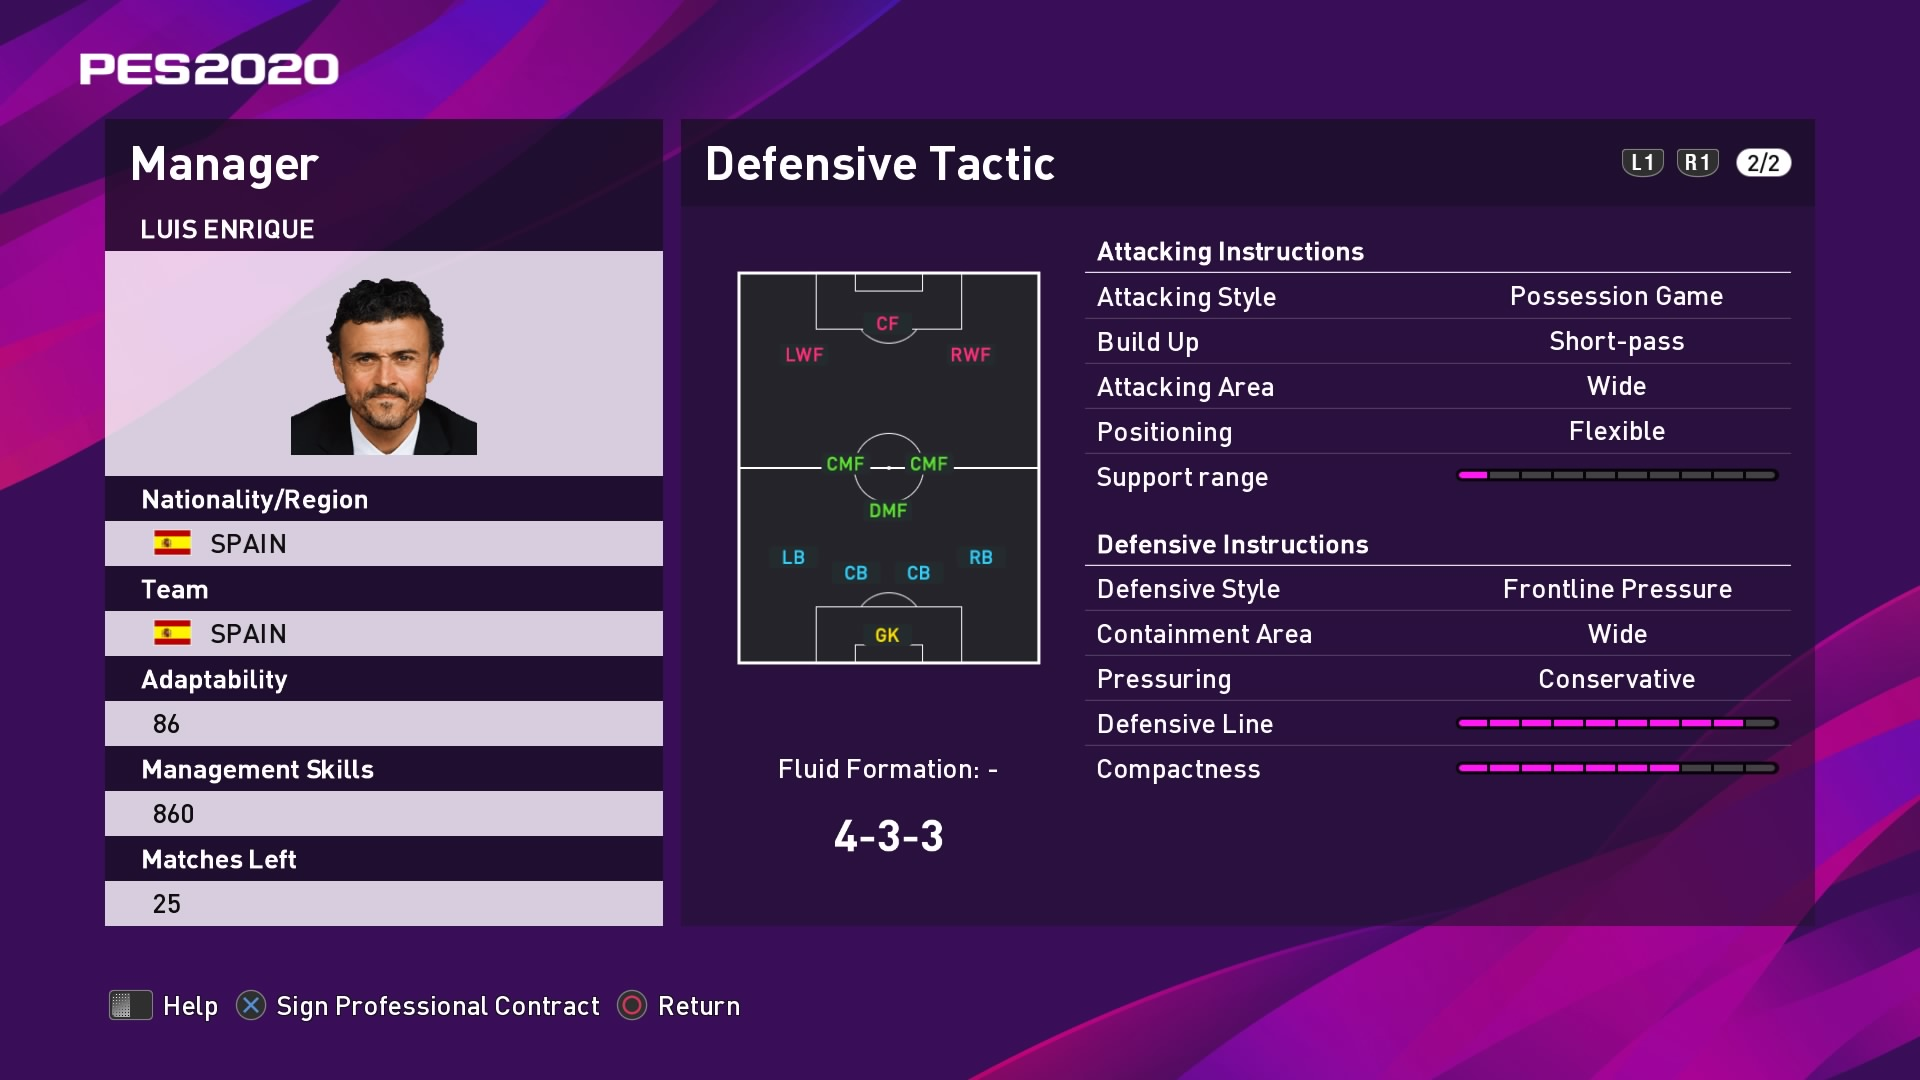 Luis Enrique (2) Defensive Tactic in PES 2020 myClub